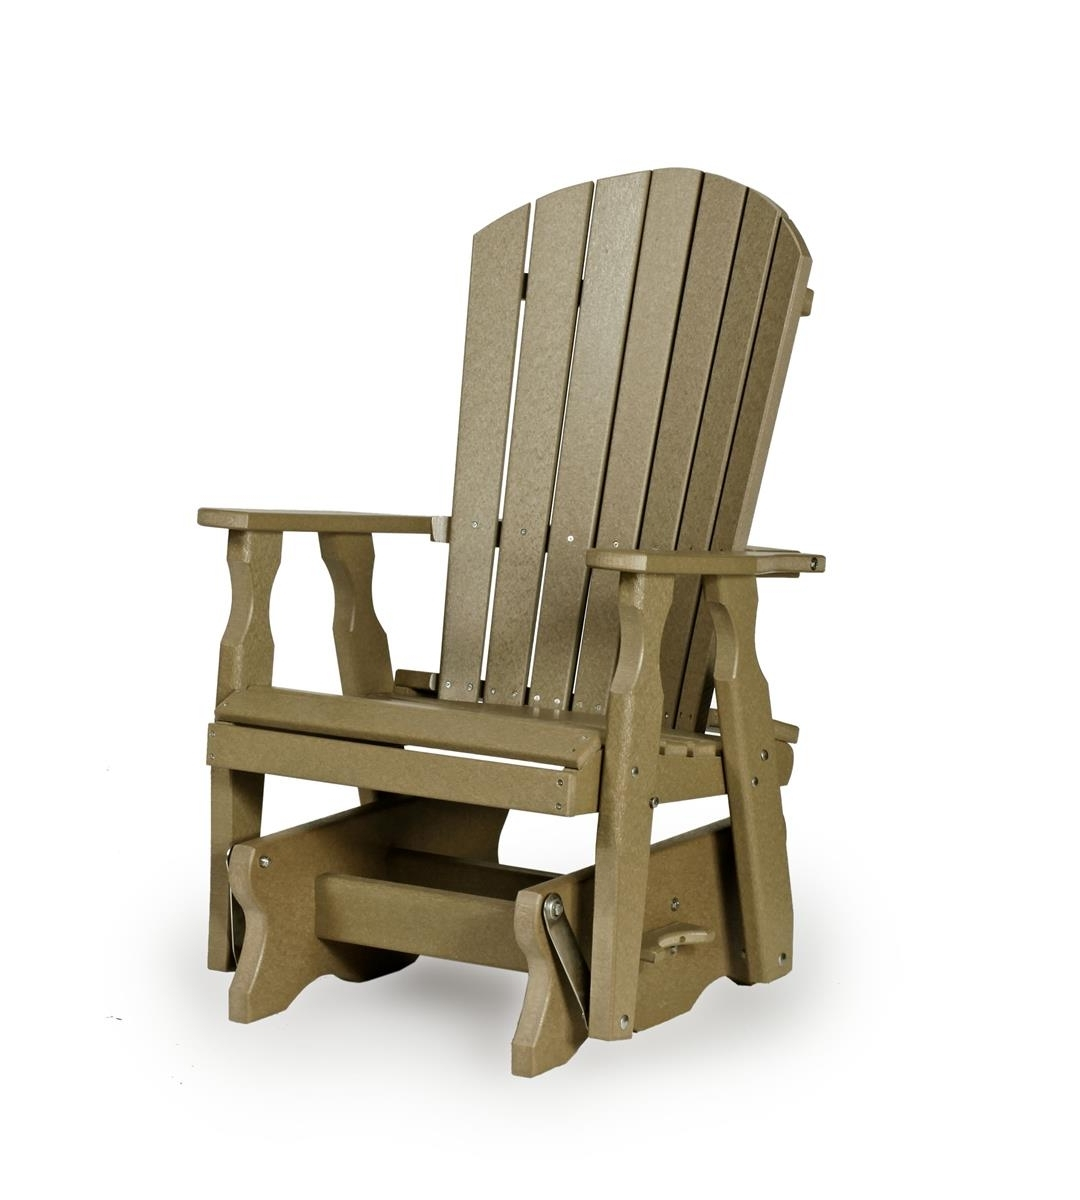 Rocking Chairs For Outside Regarding Most Recent Rocking Chairs For Outside Incredible Chair On Porch Home Design (View 11 of 20)